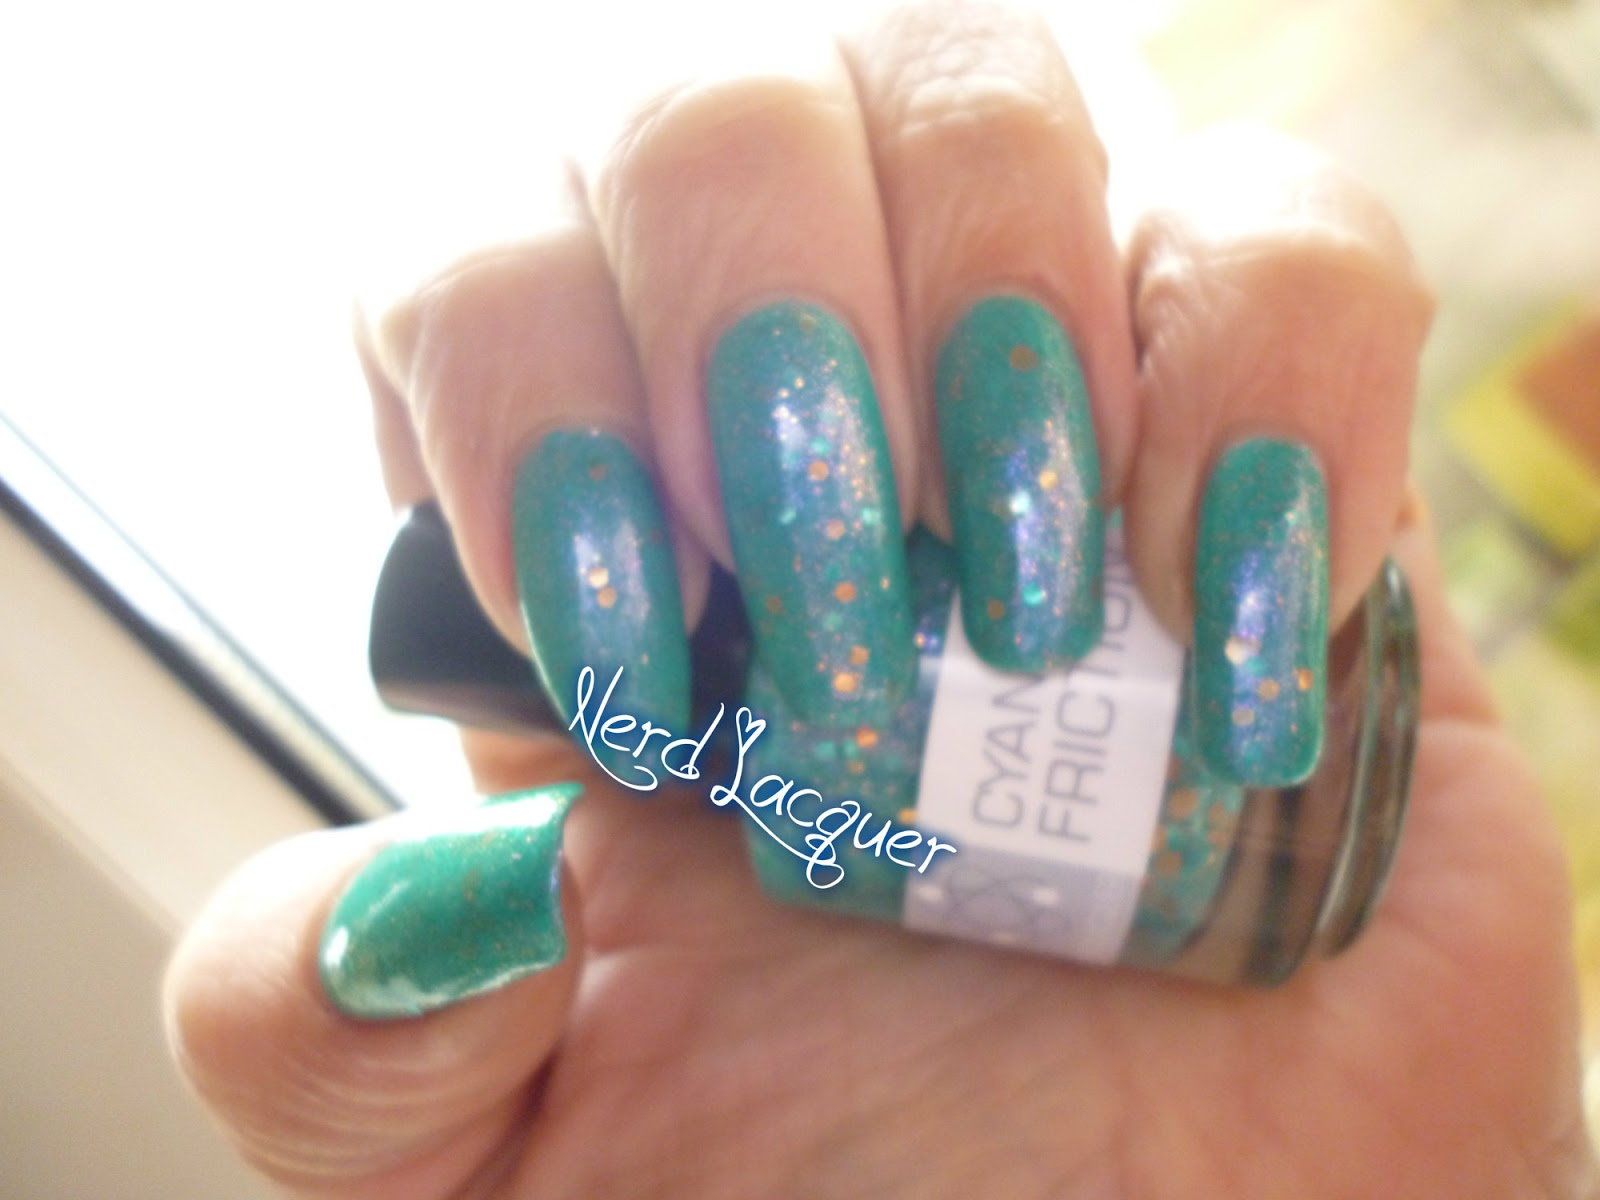 my adventures in nail polish: Guest Post from my beautiful sister ...